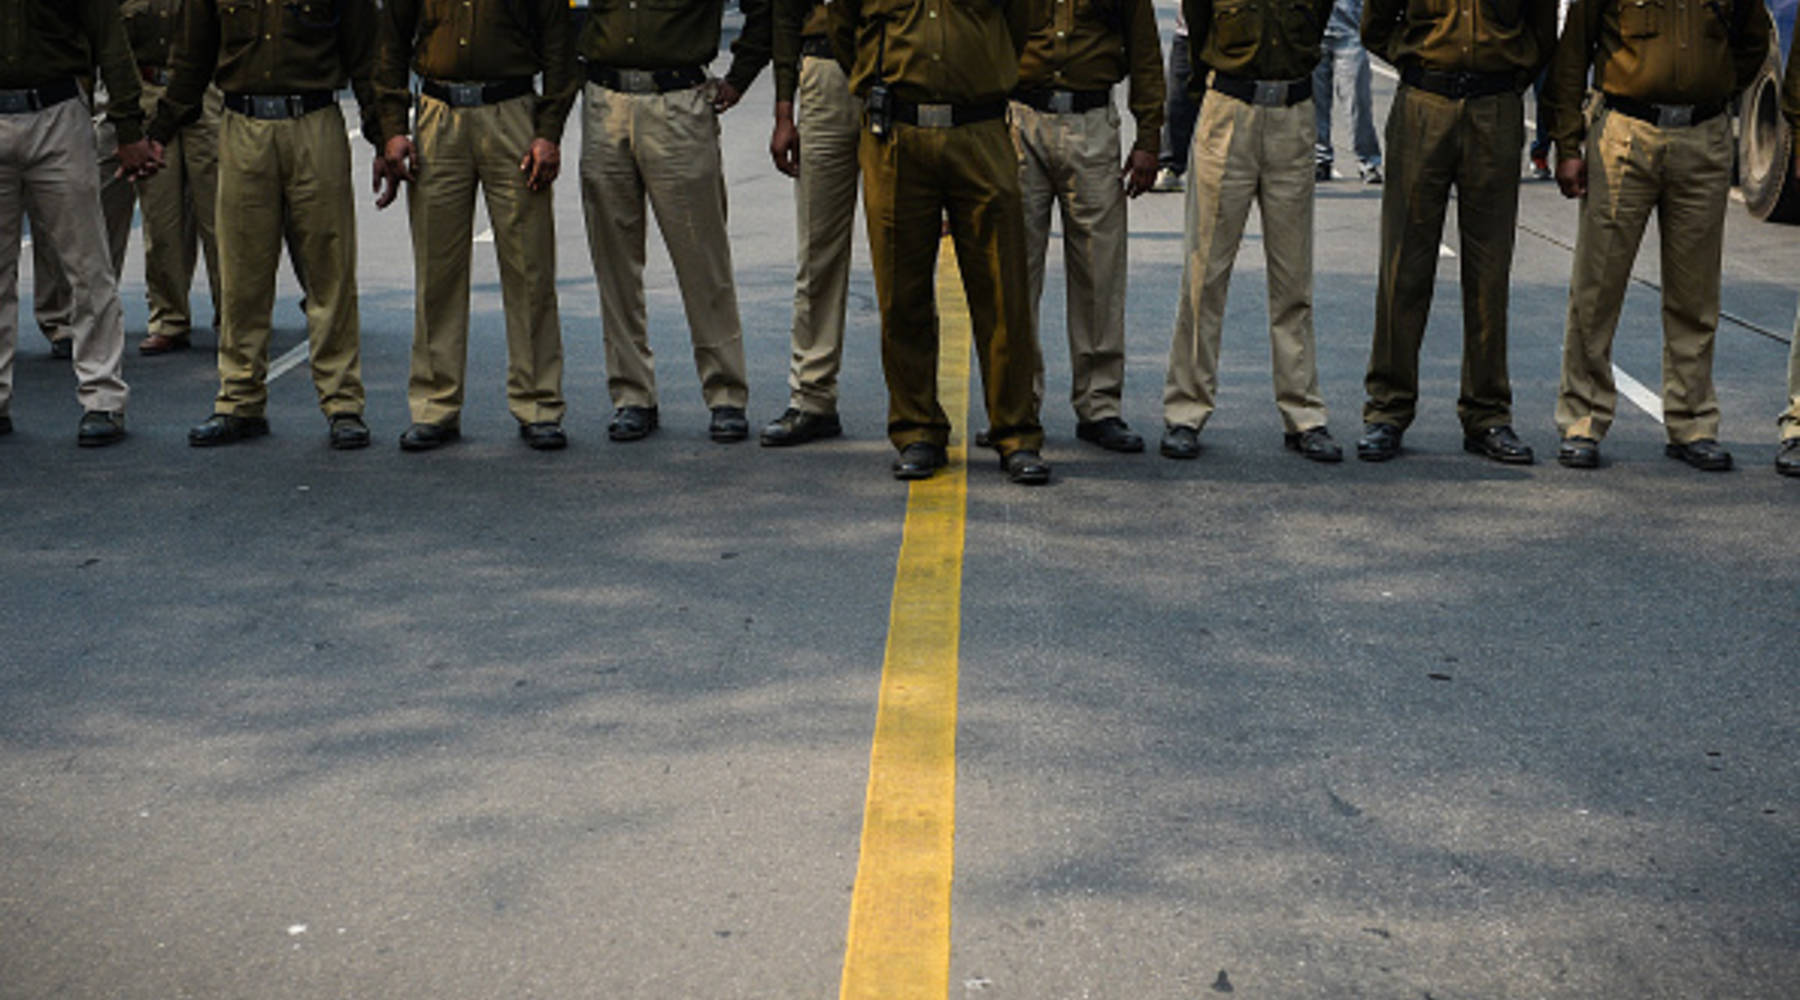 India uses tech to reduce bribes among police and government